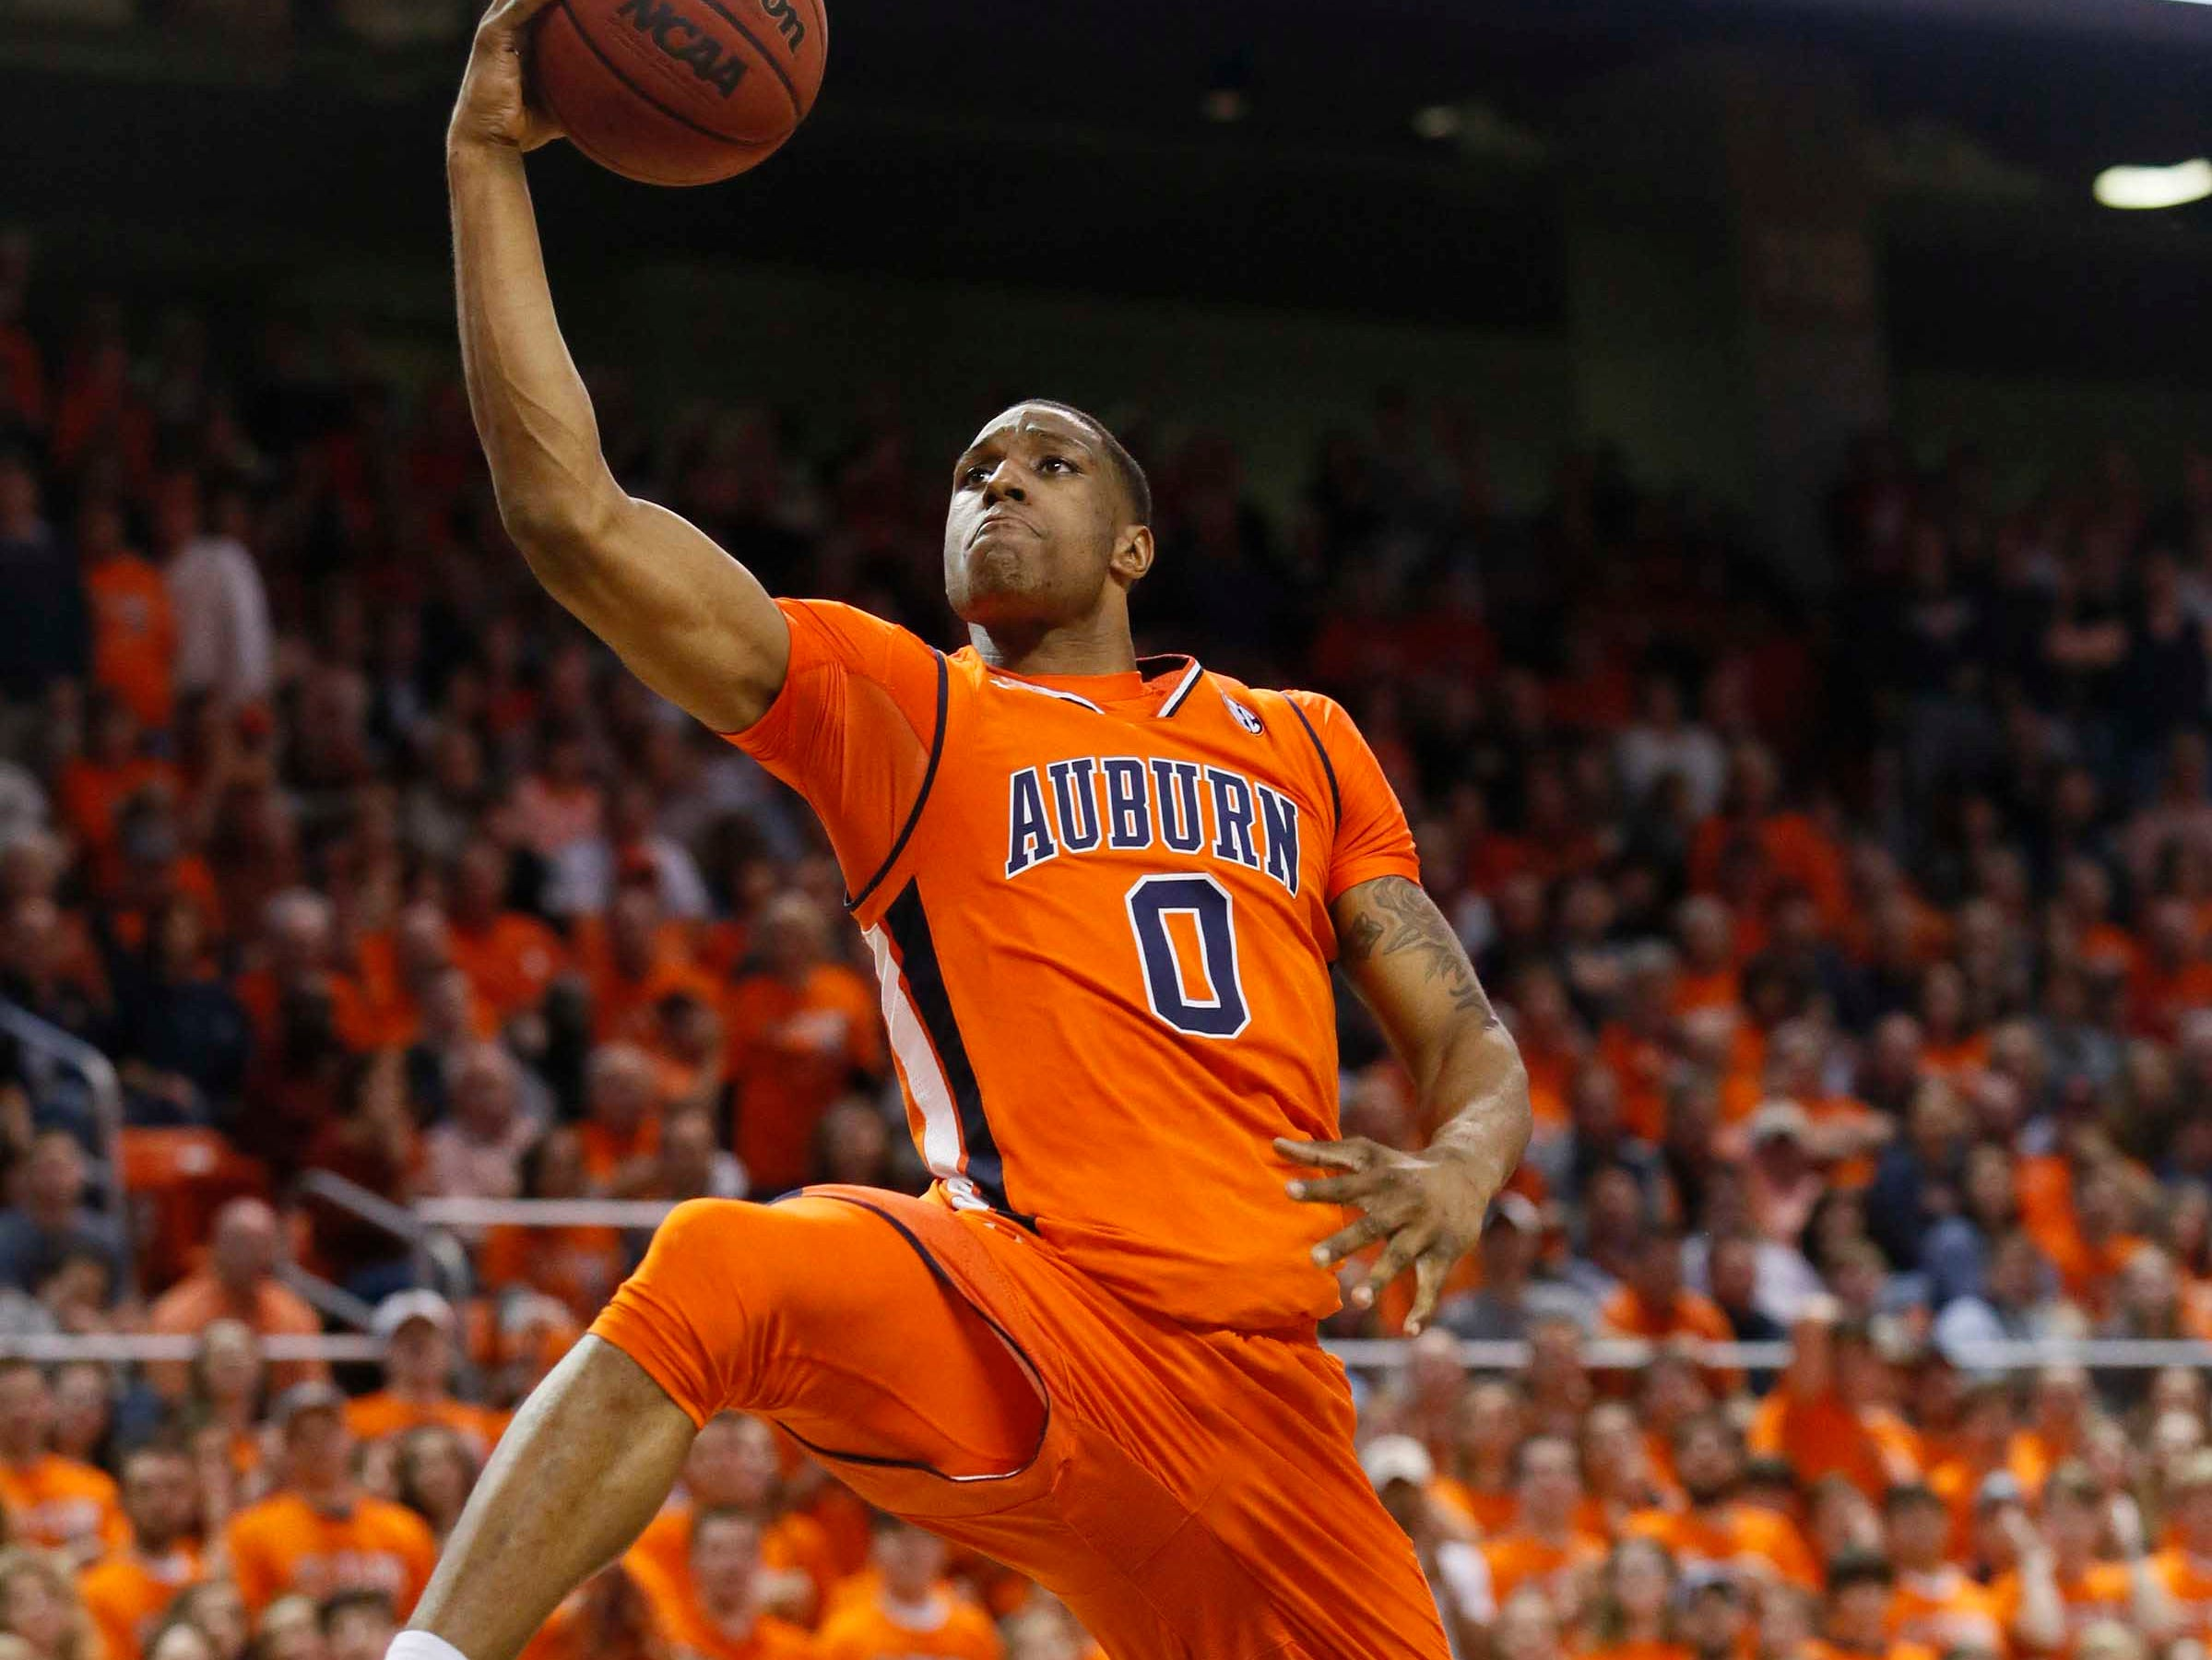 Feb 2, 2019; Auburn, AL, USA; Auburn Tigers forward Howard Spencer (0) takes a shot against the Alabama Crimson Tide during the second half at Auburn Arena. Mandatory Credit: John Reed-USA TODAY Sports